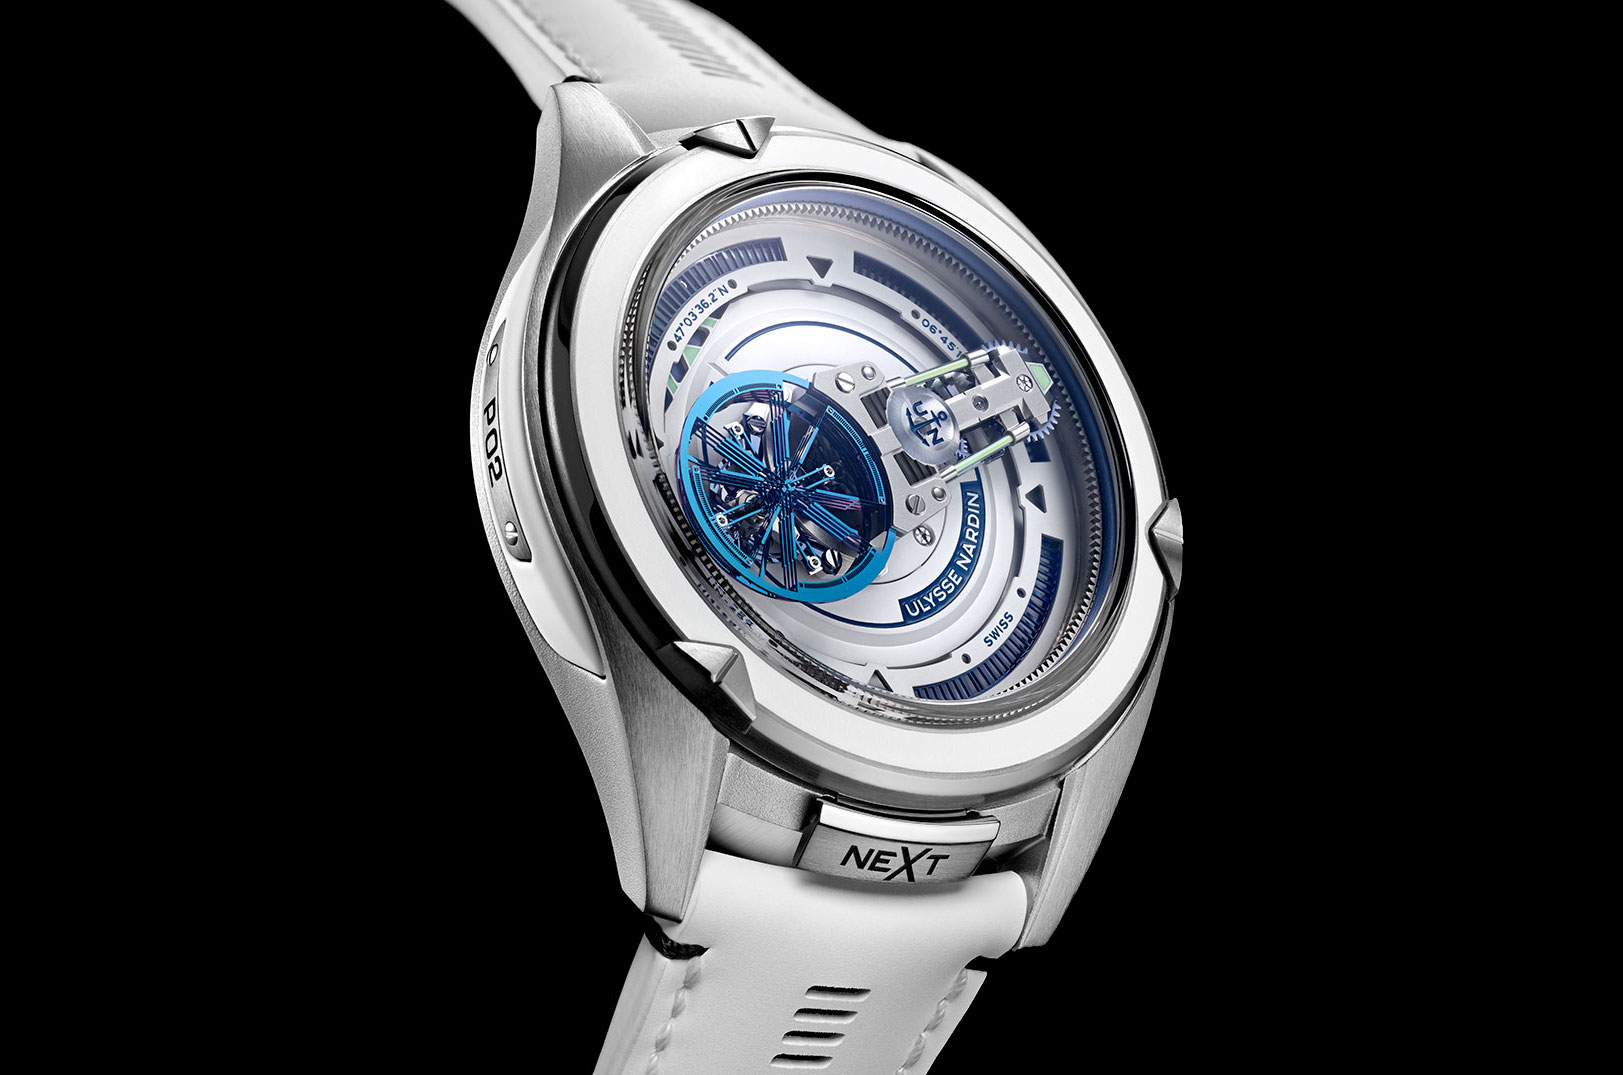 Ulysse-Nardin-Freak-Next-Watch